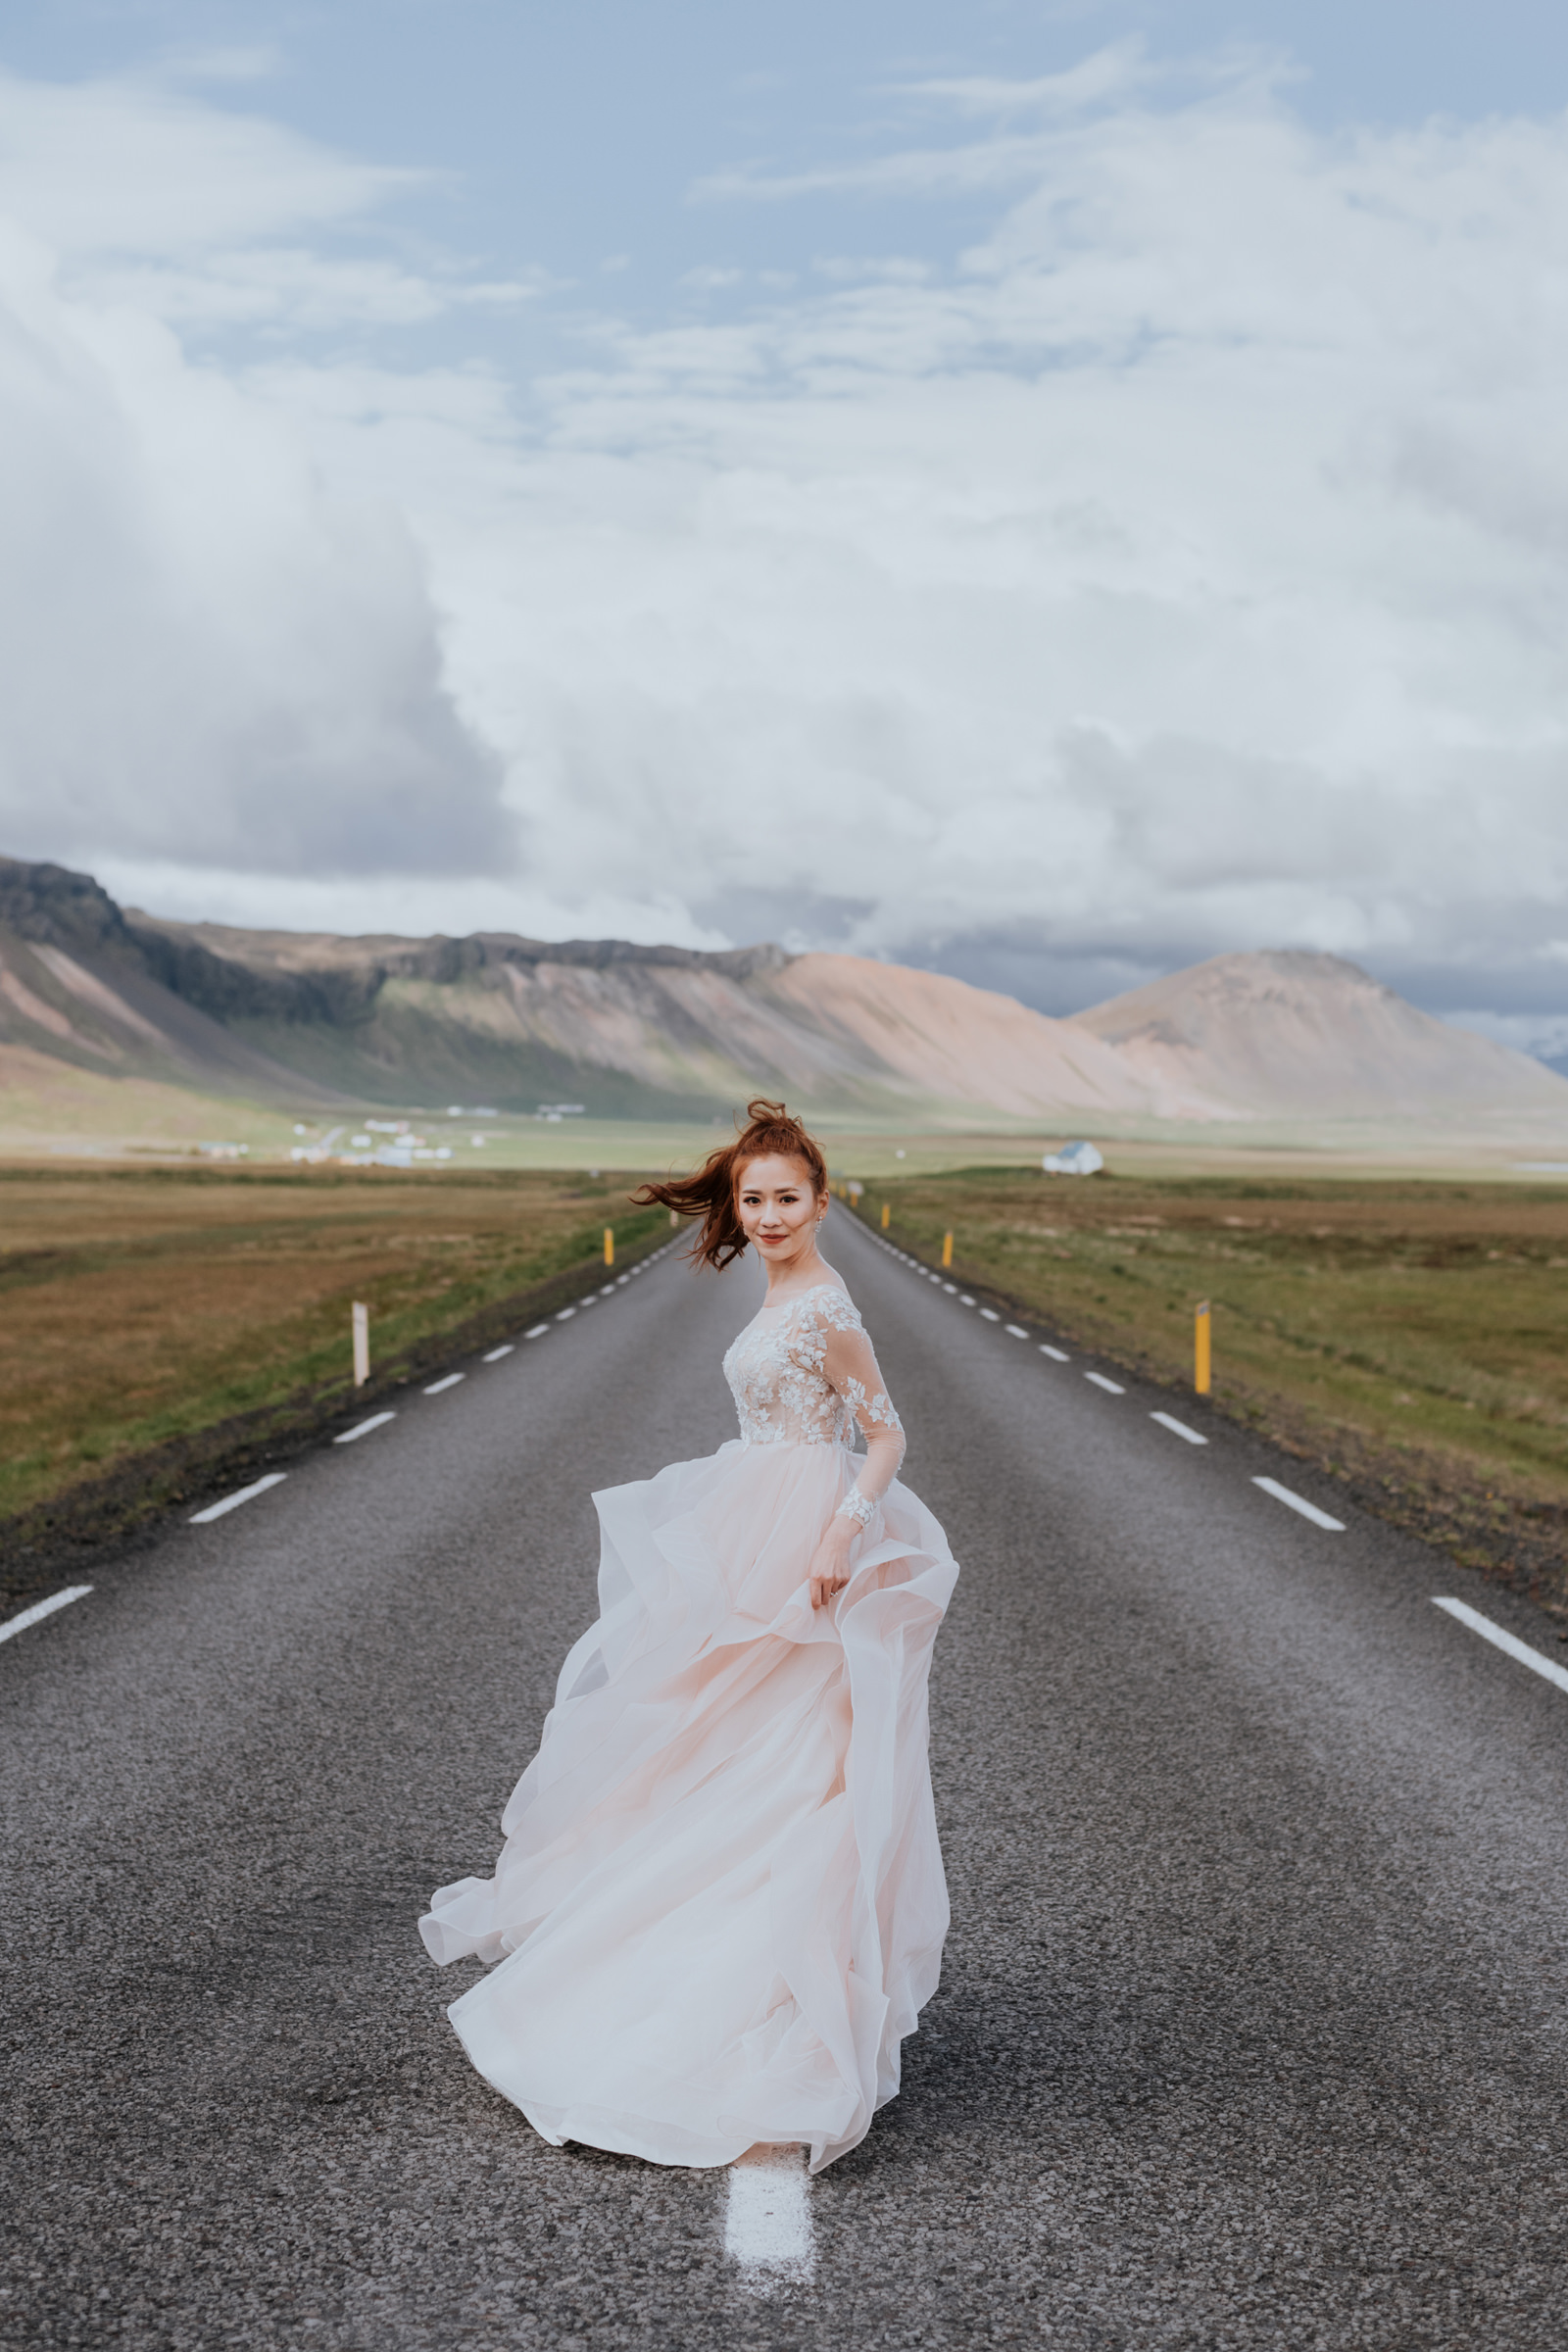 Bride in ruffled gown walking on road - Photo by MunKeat Photography Studio